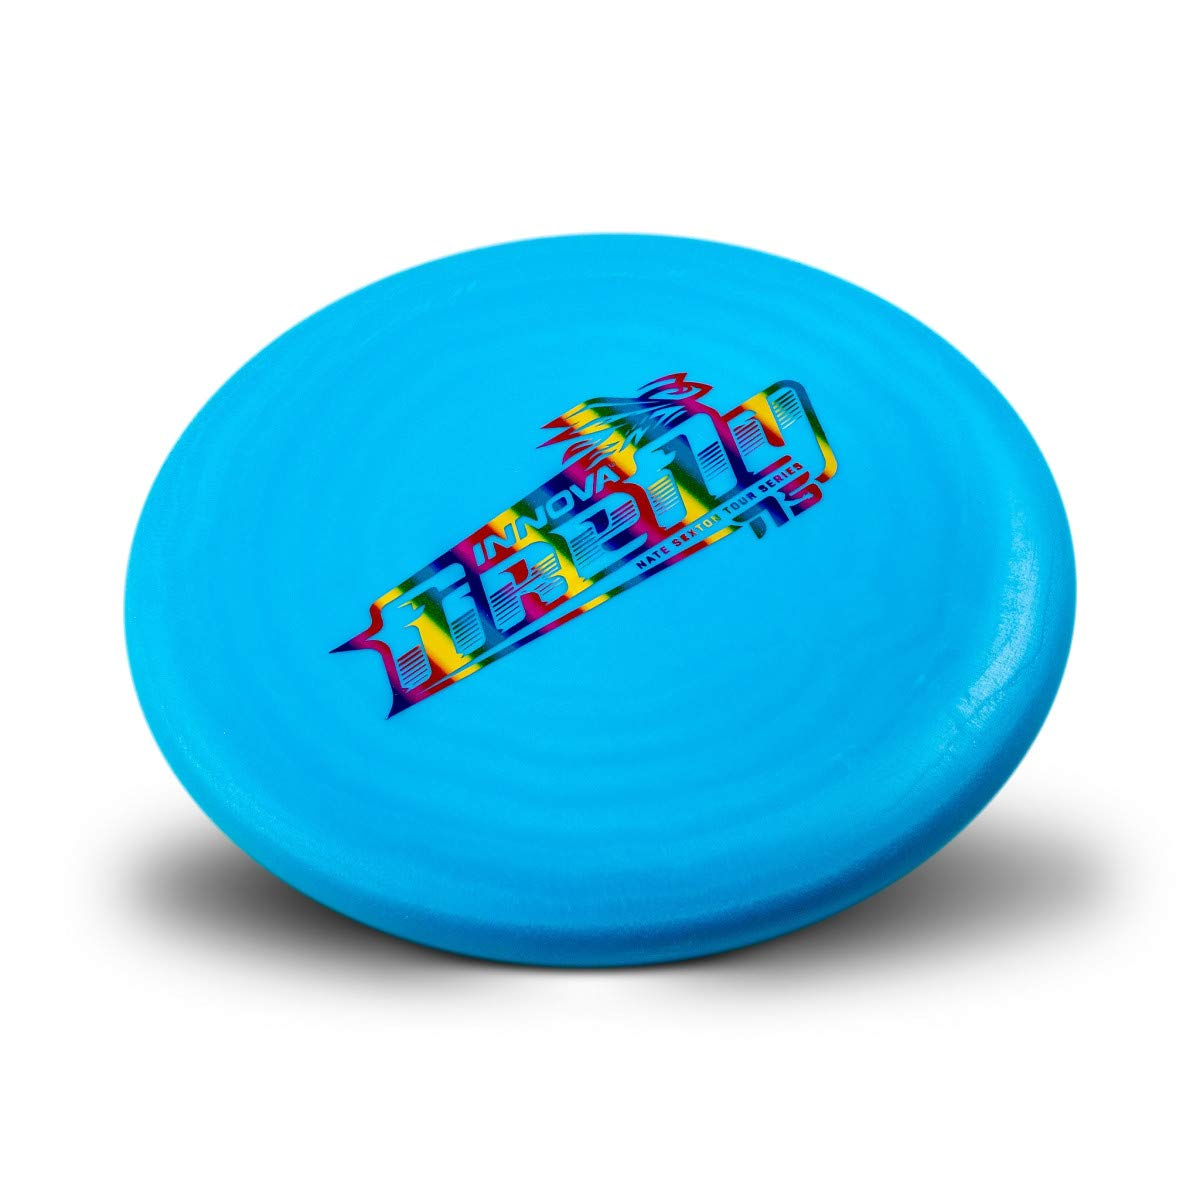 Innova Limited Edition 2019 Tour Series Nate Sexton Nexus Firefly Putt & Approach Golf Disc [Colors May Vary] - 173-175g by Innova Disc Golf